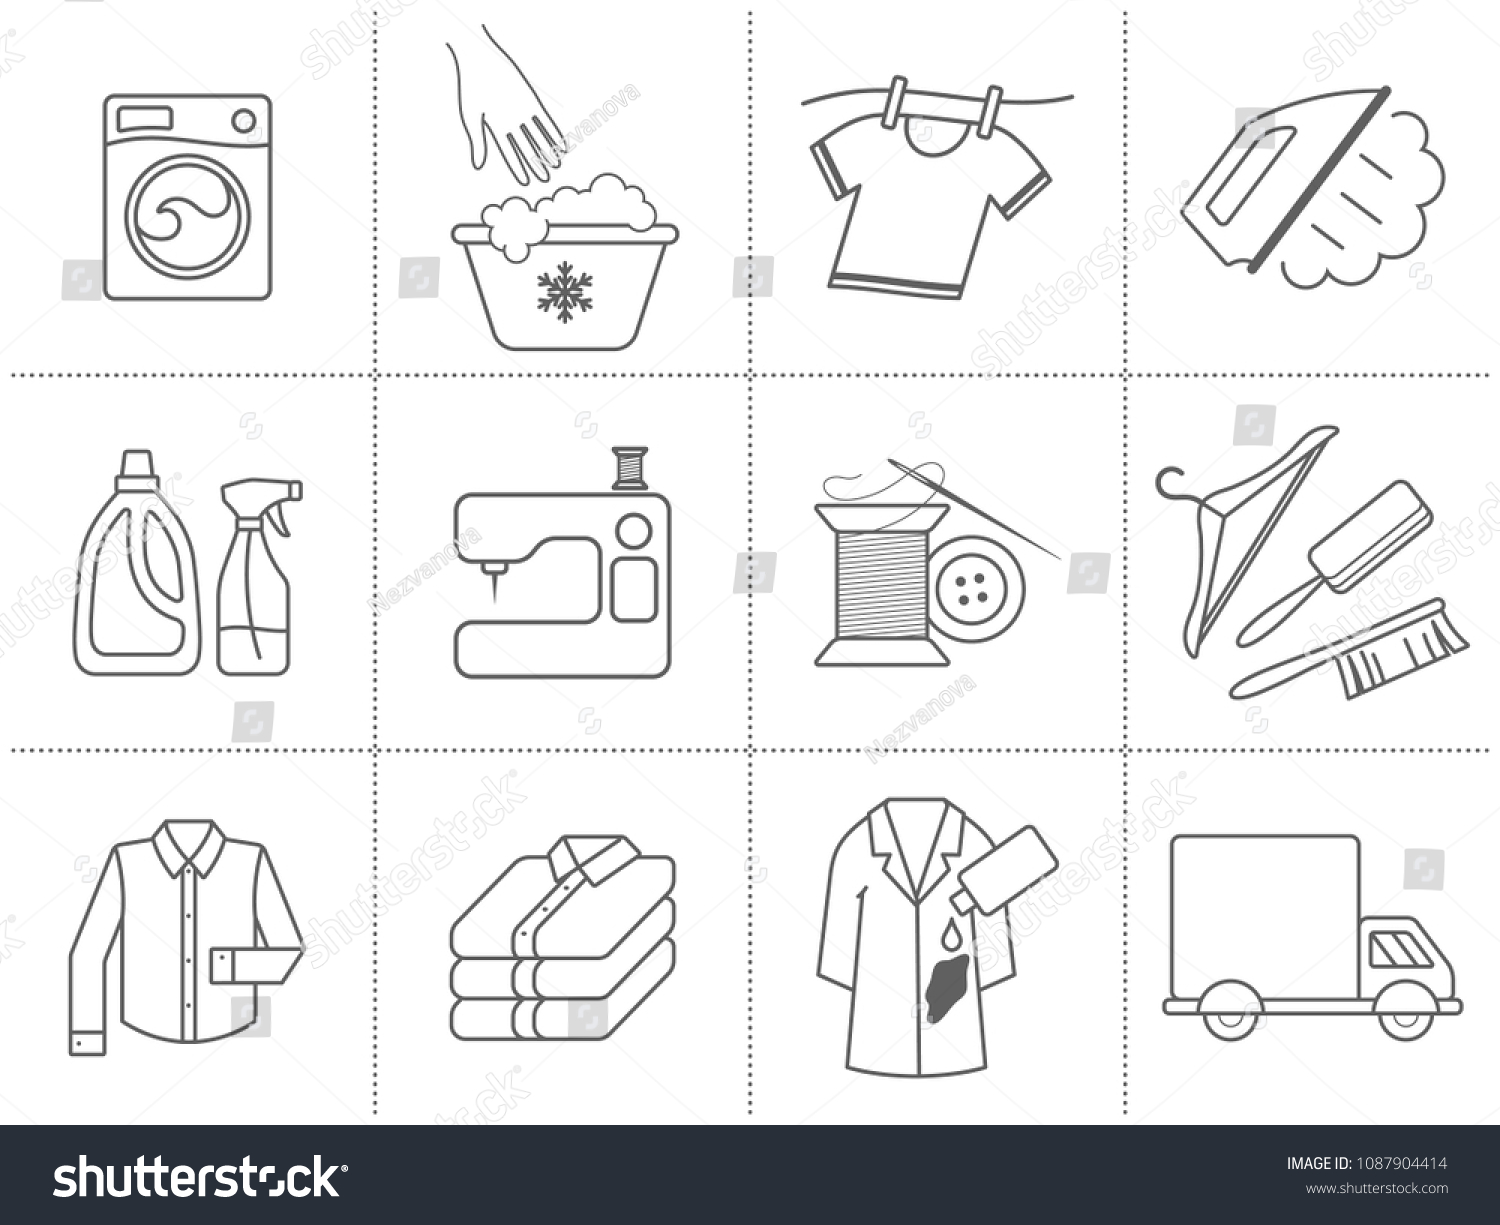 Dry Cleaning Laundry Cloth Washing Service Stock Vector Royalty